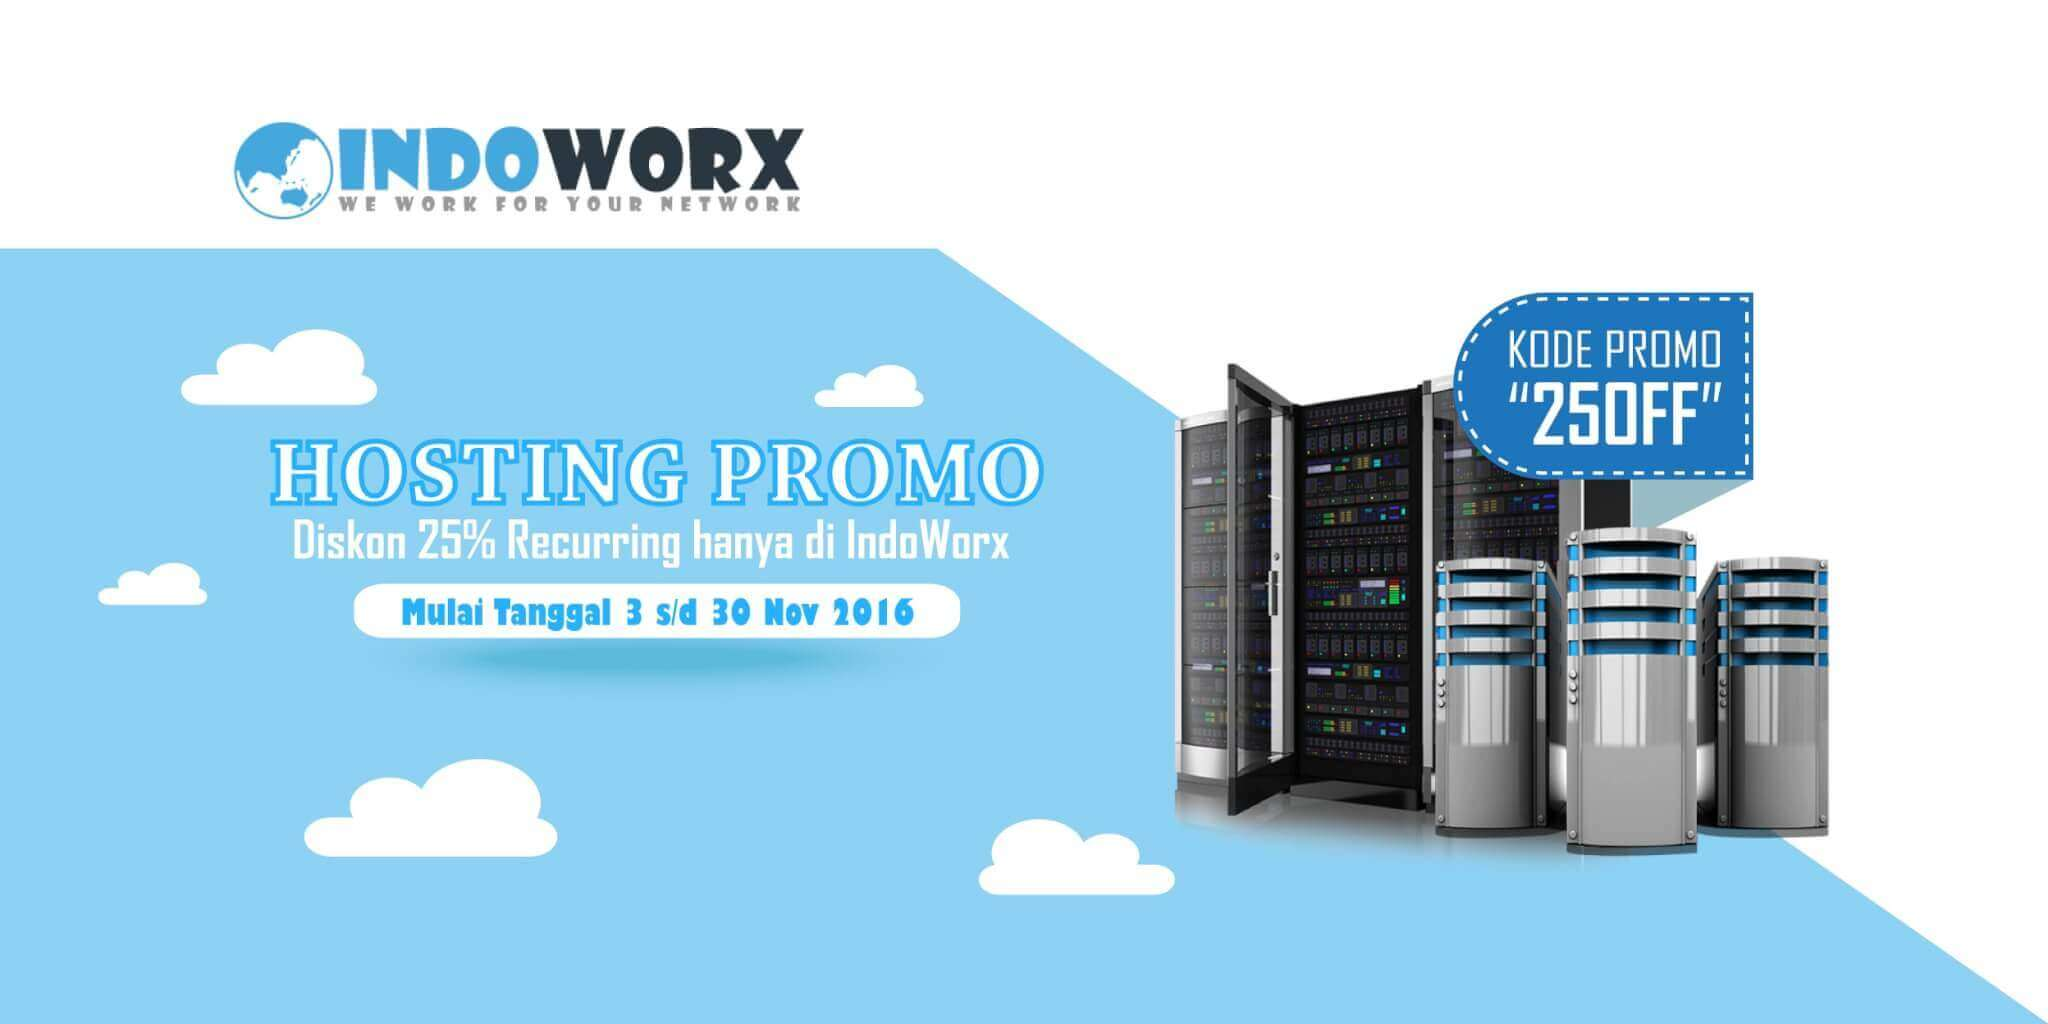 Promo Hosting Diskon 25% Recurring